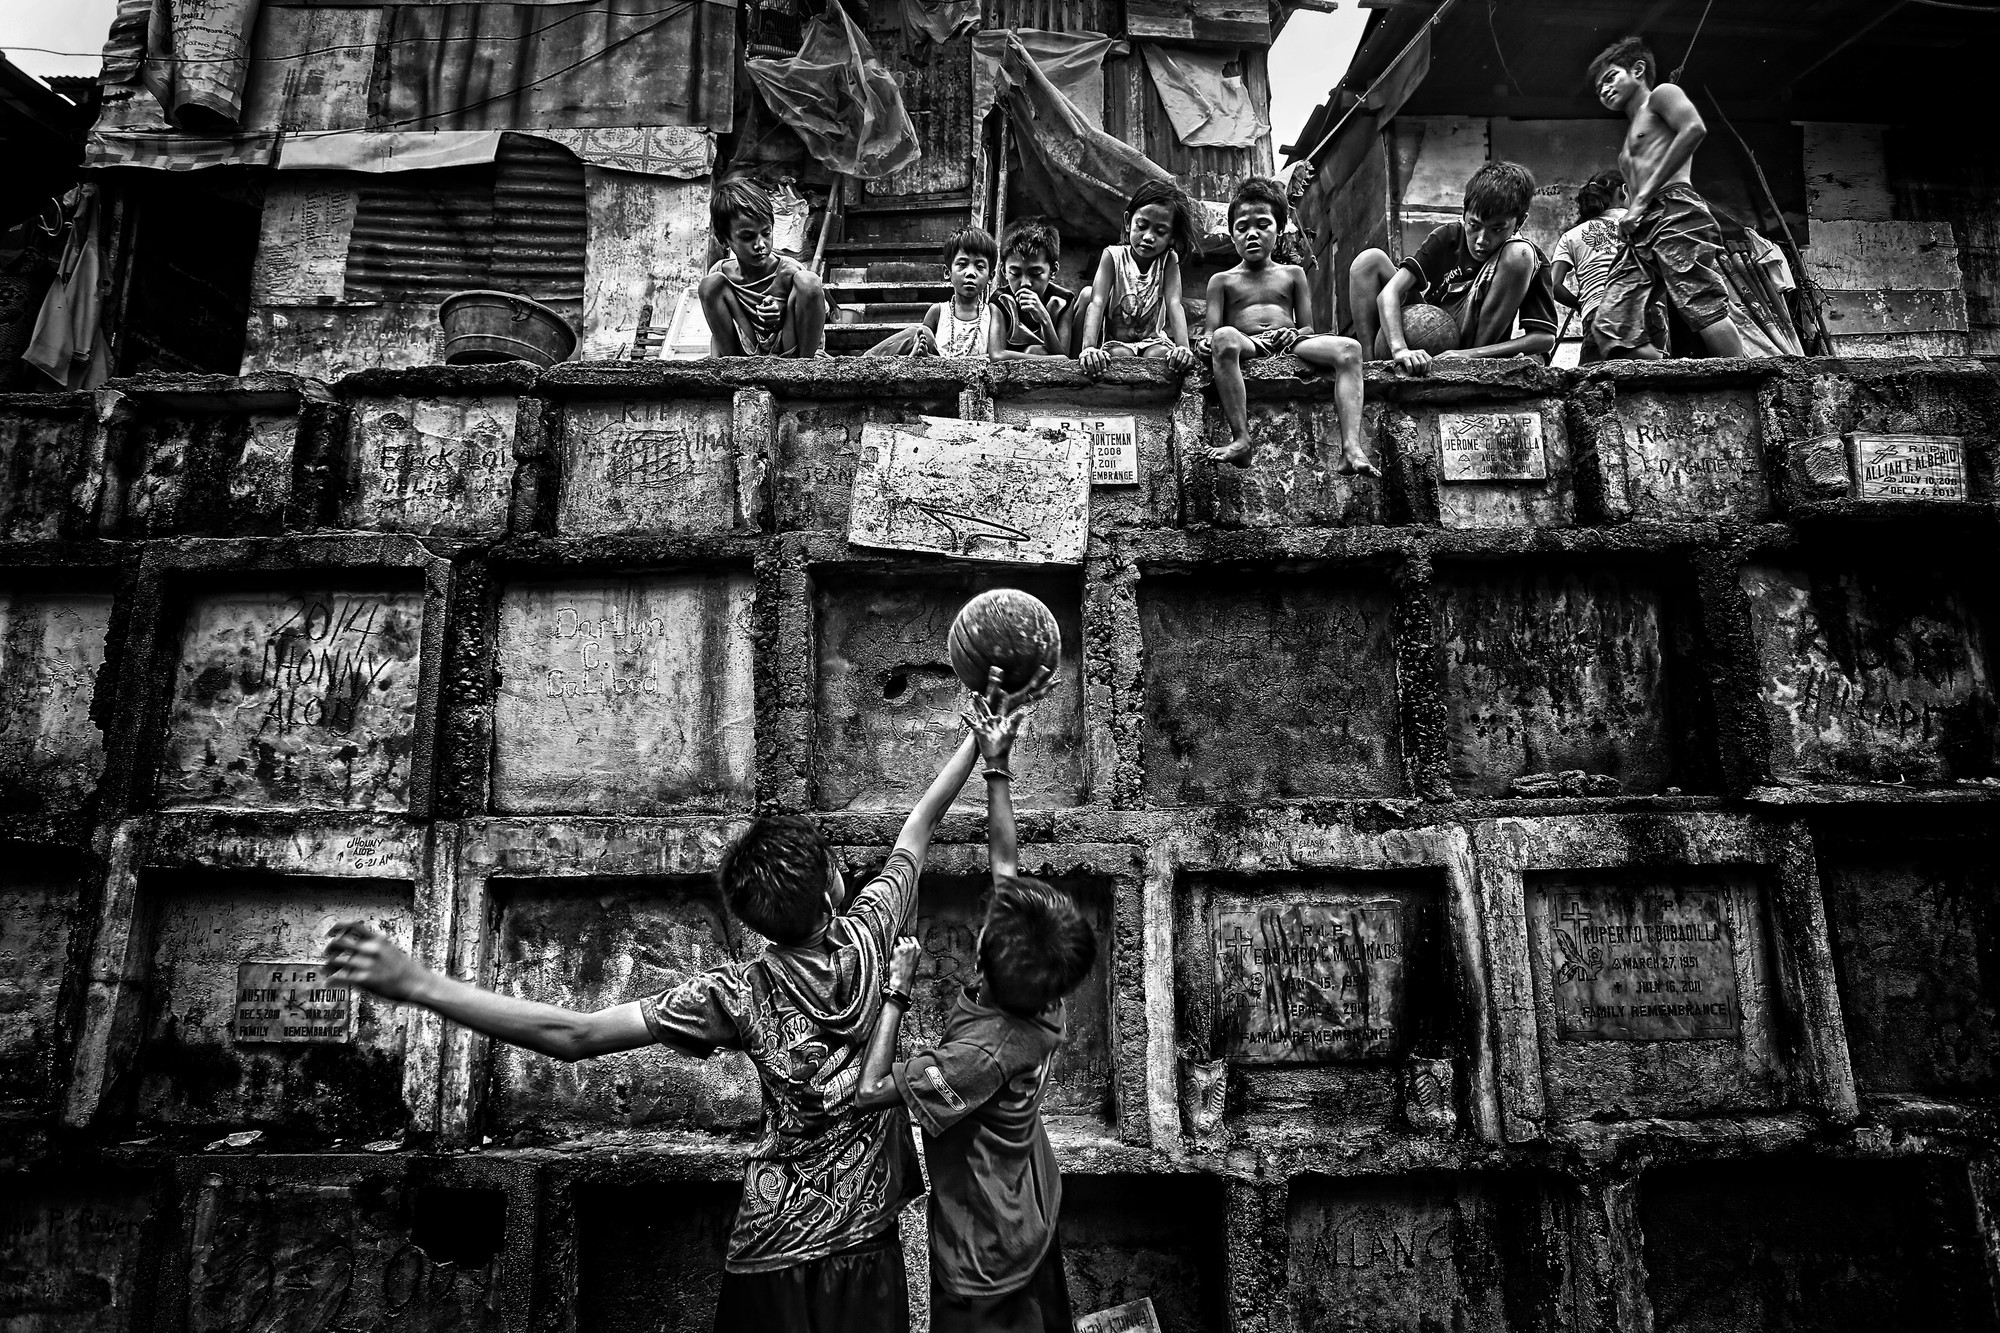 Finalists Nominated For The Art Of Building Photographer Of The